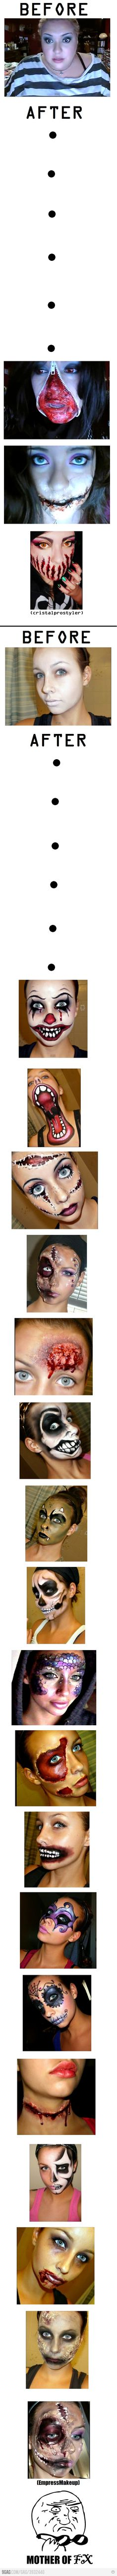 Halloween makeup {i really don't like these super lllloooonnngg posts, but...WOW..} http://hubz.info/70/beautiful-backless-dresses-ideas-for-a-sexy-look